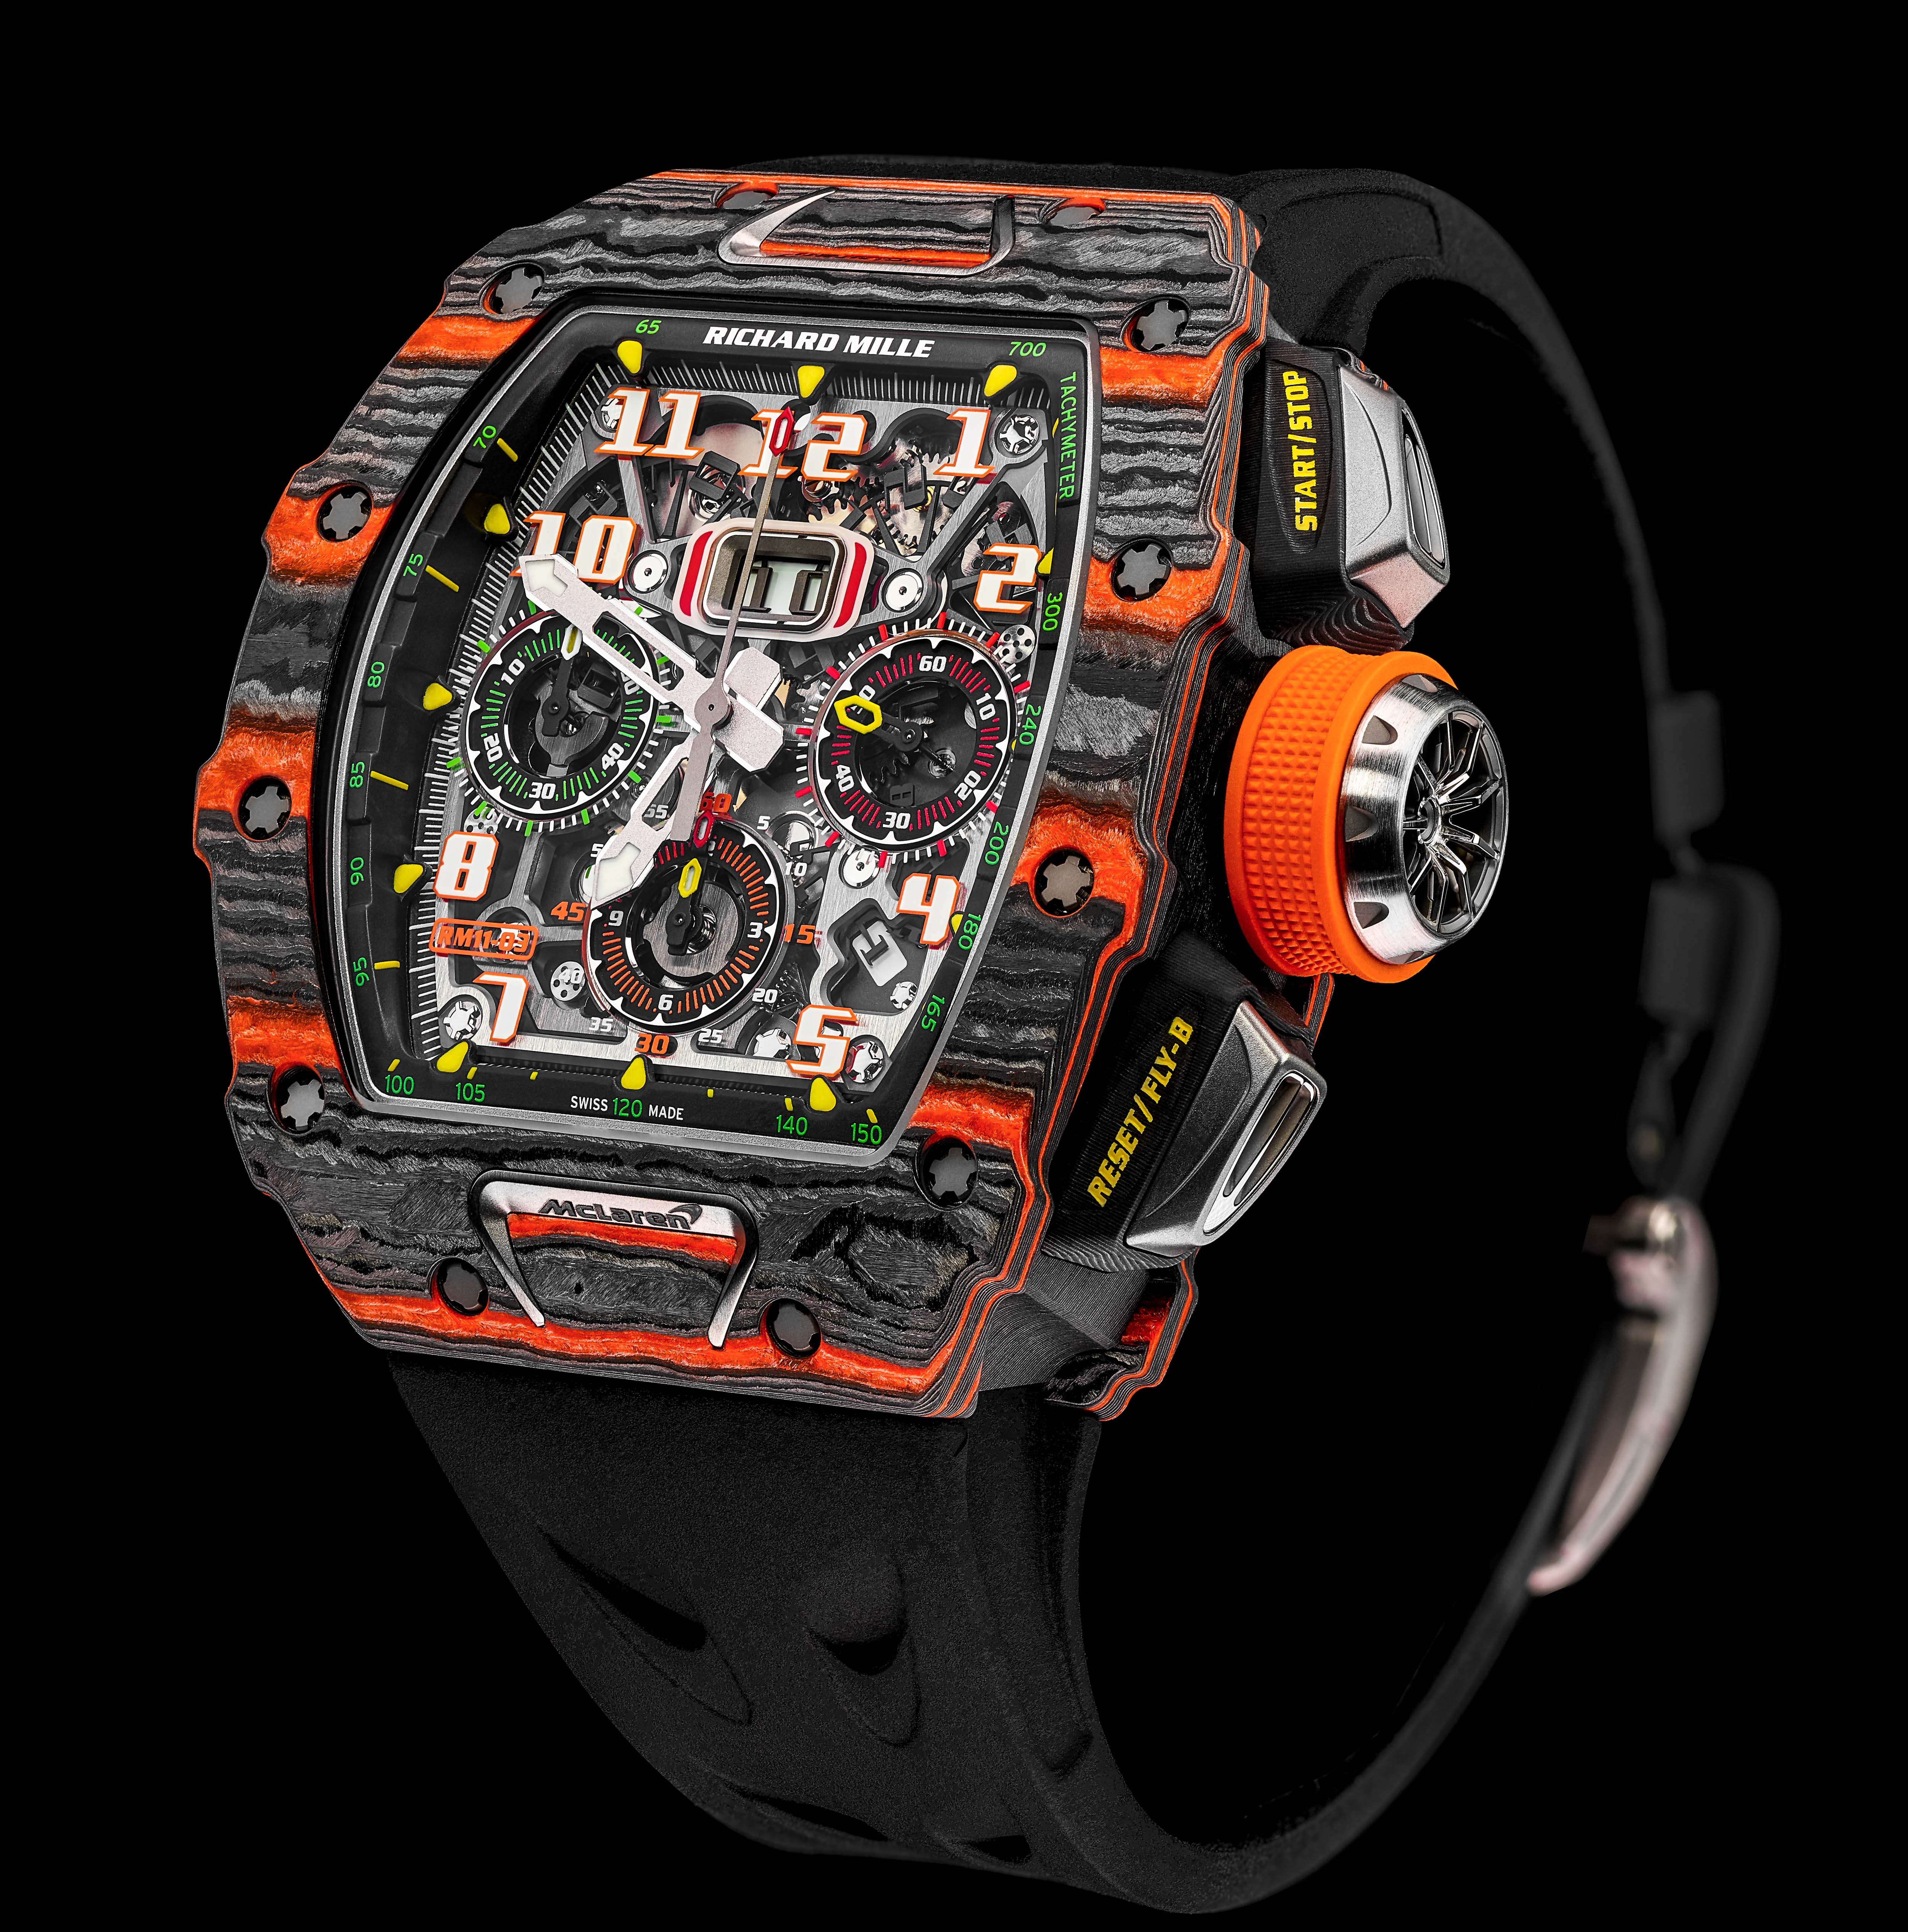 La Cote Des Montres The Richard Mille Rm 11 03 Flyback Chronograph Mclaren Watch Richard Mille Mclaren Automotive Launch Their First Rm 11 03 Mclare Timepiece At The 88th Geneva Motor Show